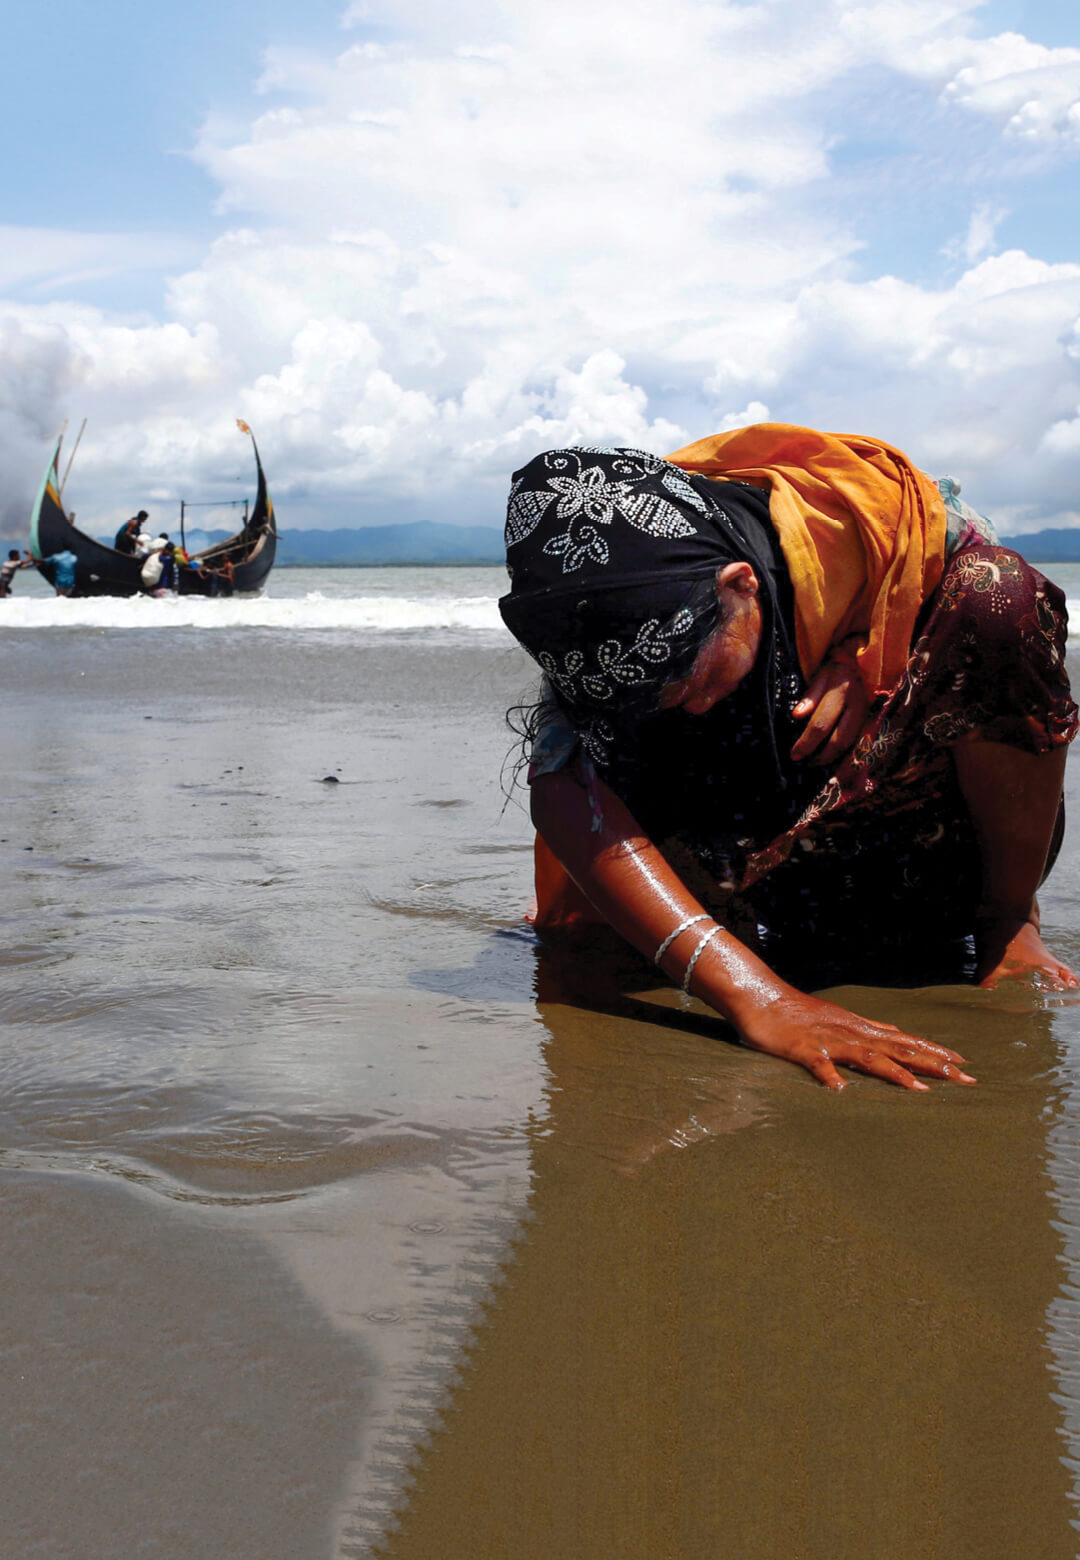 An exhausted Rohingya refugee woman touches the shore after crossing the Bangladesh-Myanmar border by boat through the Bay of Bengal, in Shah Porir Dwip, Bangladesh September 11, 2017| Danish Siddiqui | STIRworld